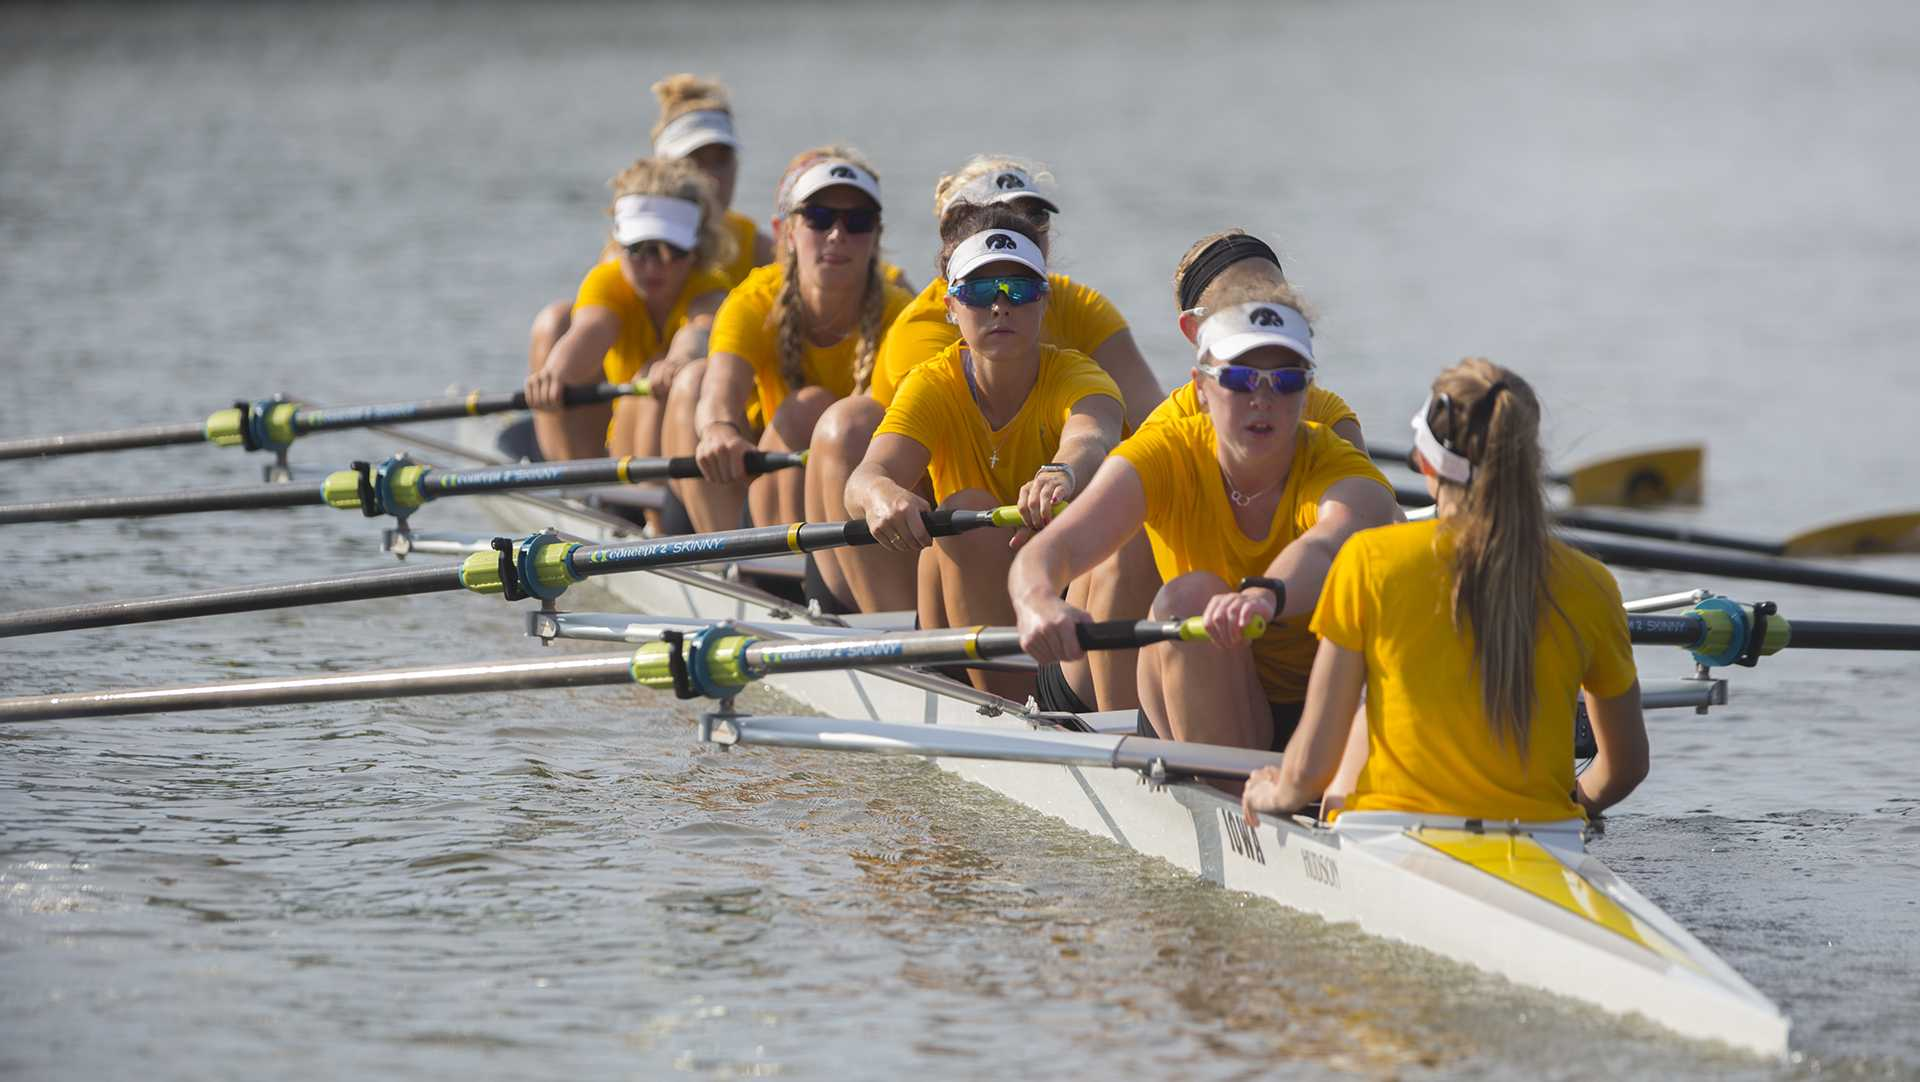 Iowa's rowing team practices on the Iowa River on Friday, Sept. 15, 2017. (Lily Smith/The Daily Iowan)